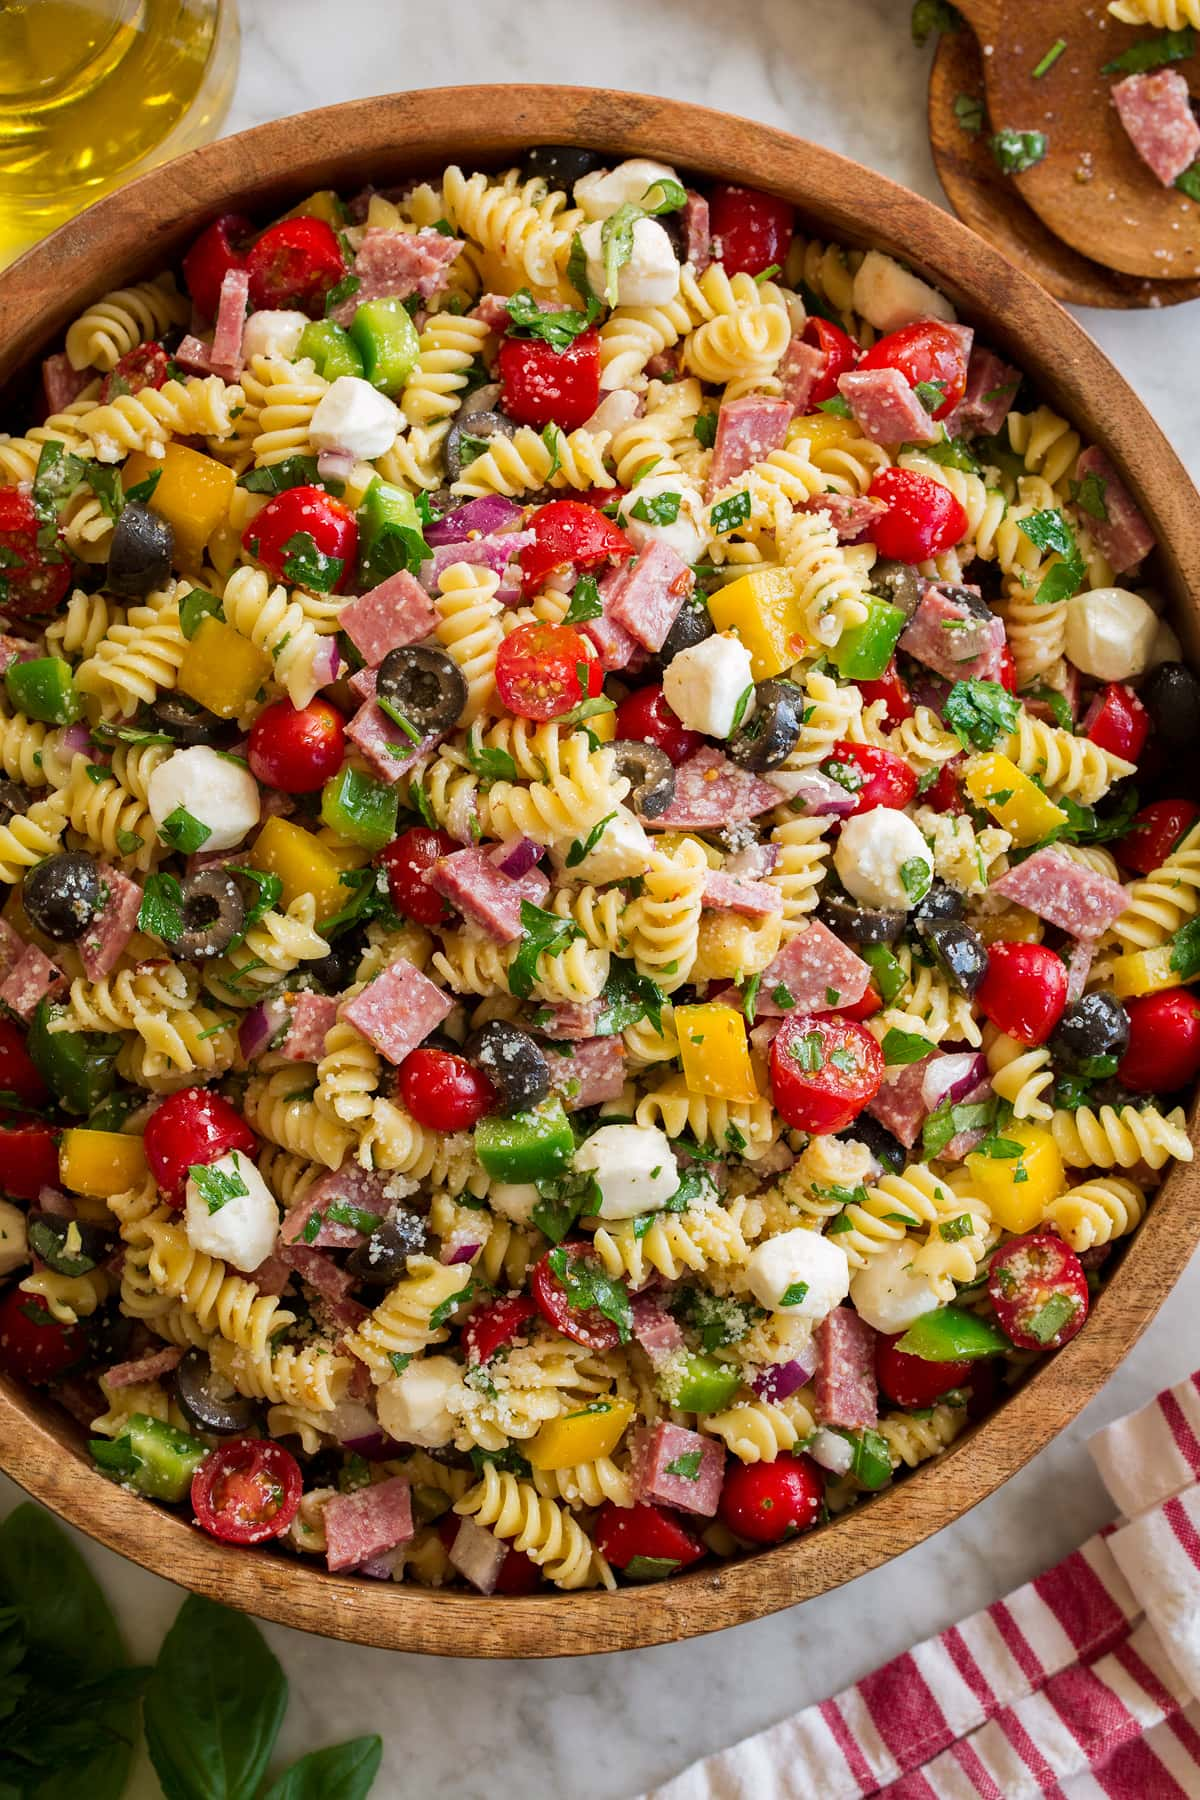 Photo: Italian Pasta Salad shown in a large wooden bowl from above. Bowl is resting on a marble surface with a striped cloth and jar of olive oil to the side.